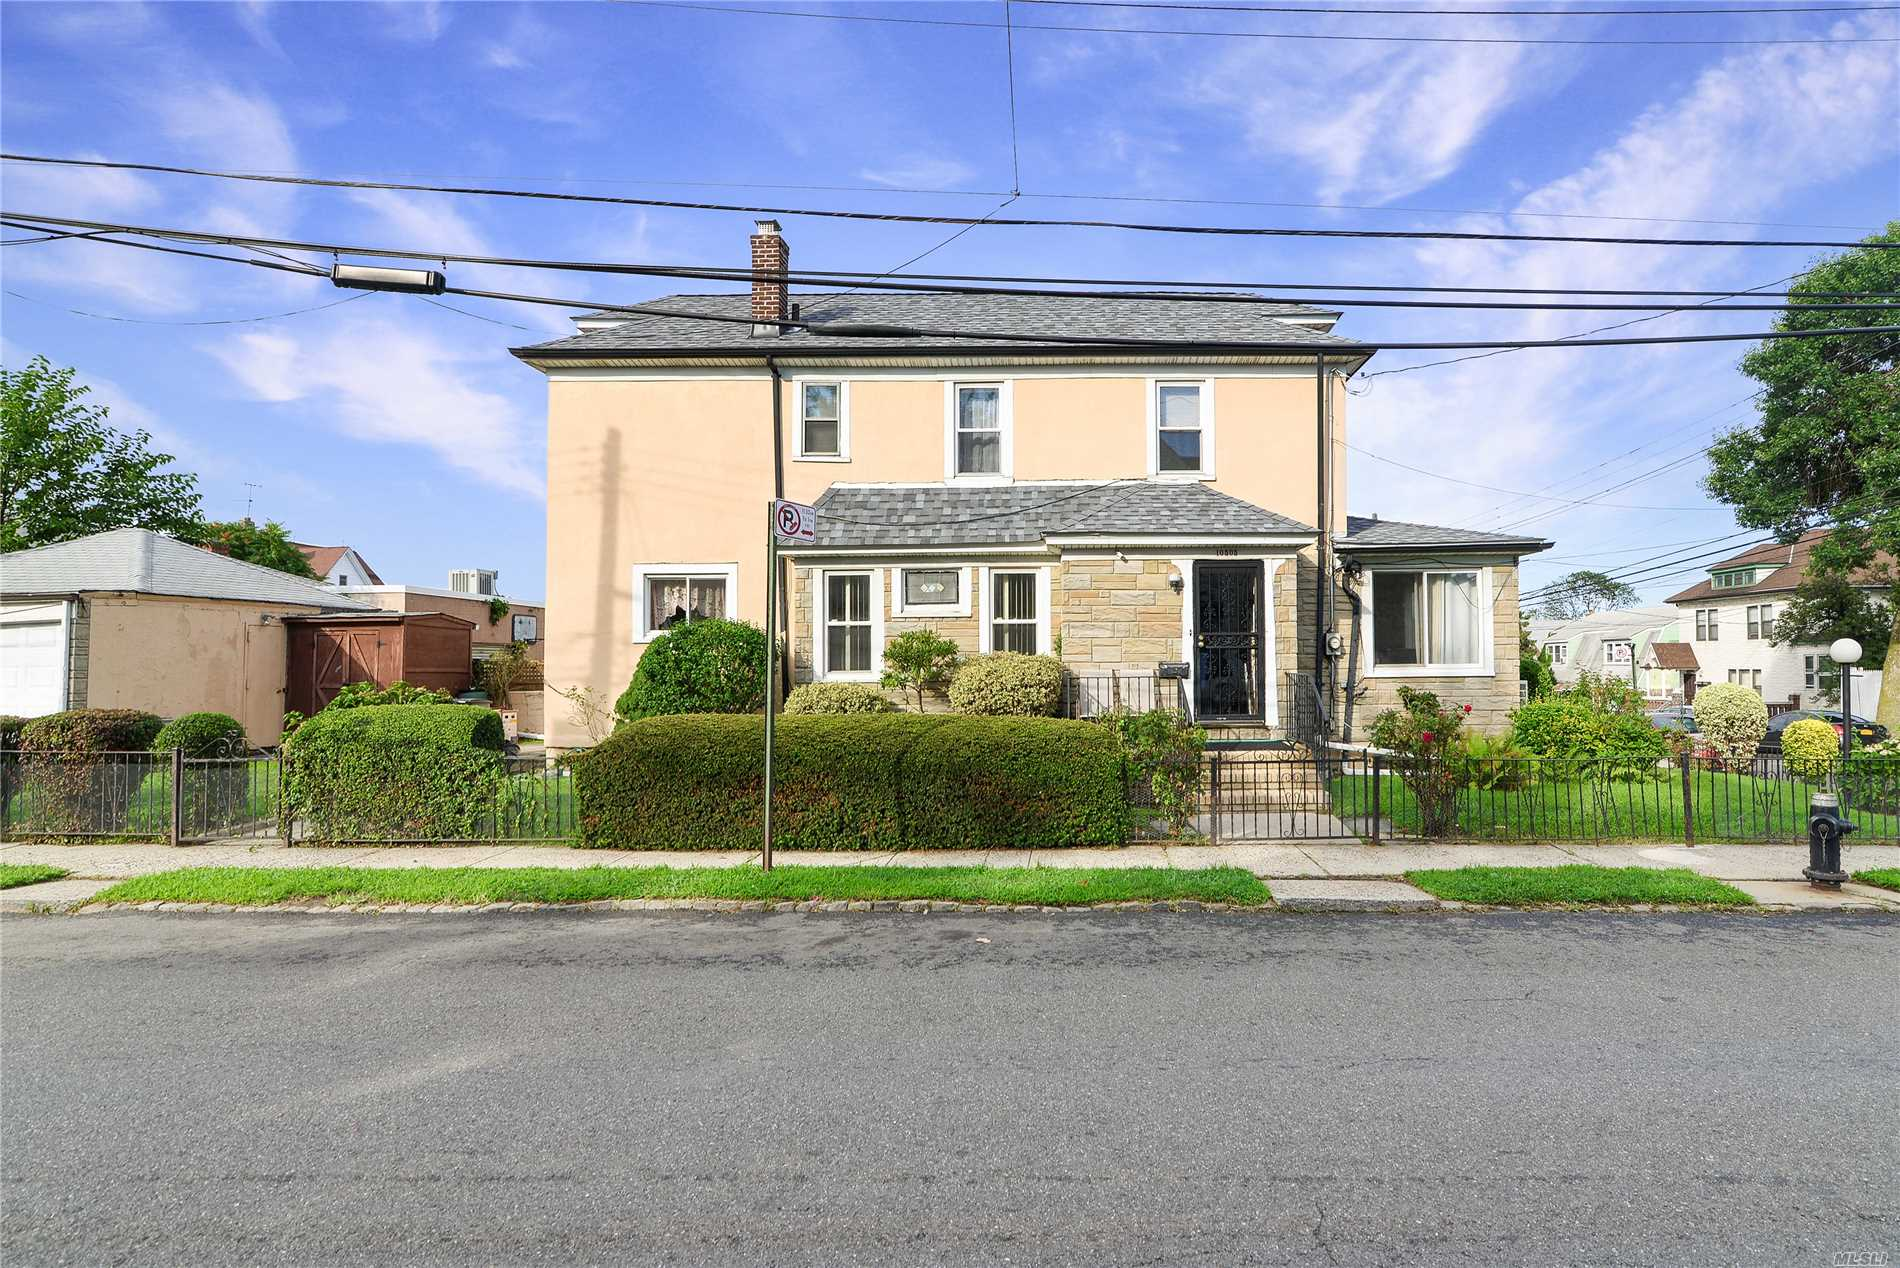 Corner Property Featuring Living Room, Formal Dining Room, Eat In Kitchen, 3 Bedrooms, Full Bath, Full Finished Basement With Separate Entrance. Perfect For Family Recreation, 2 Car Garage, Detached With Add Yard Space.